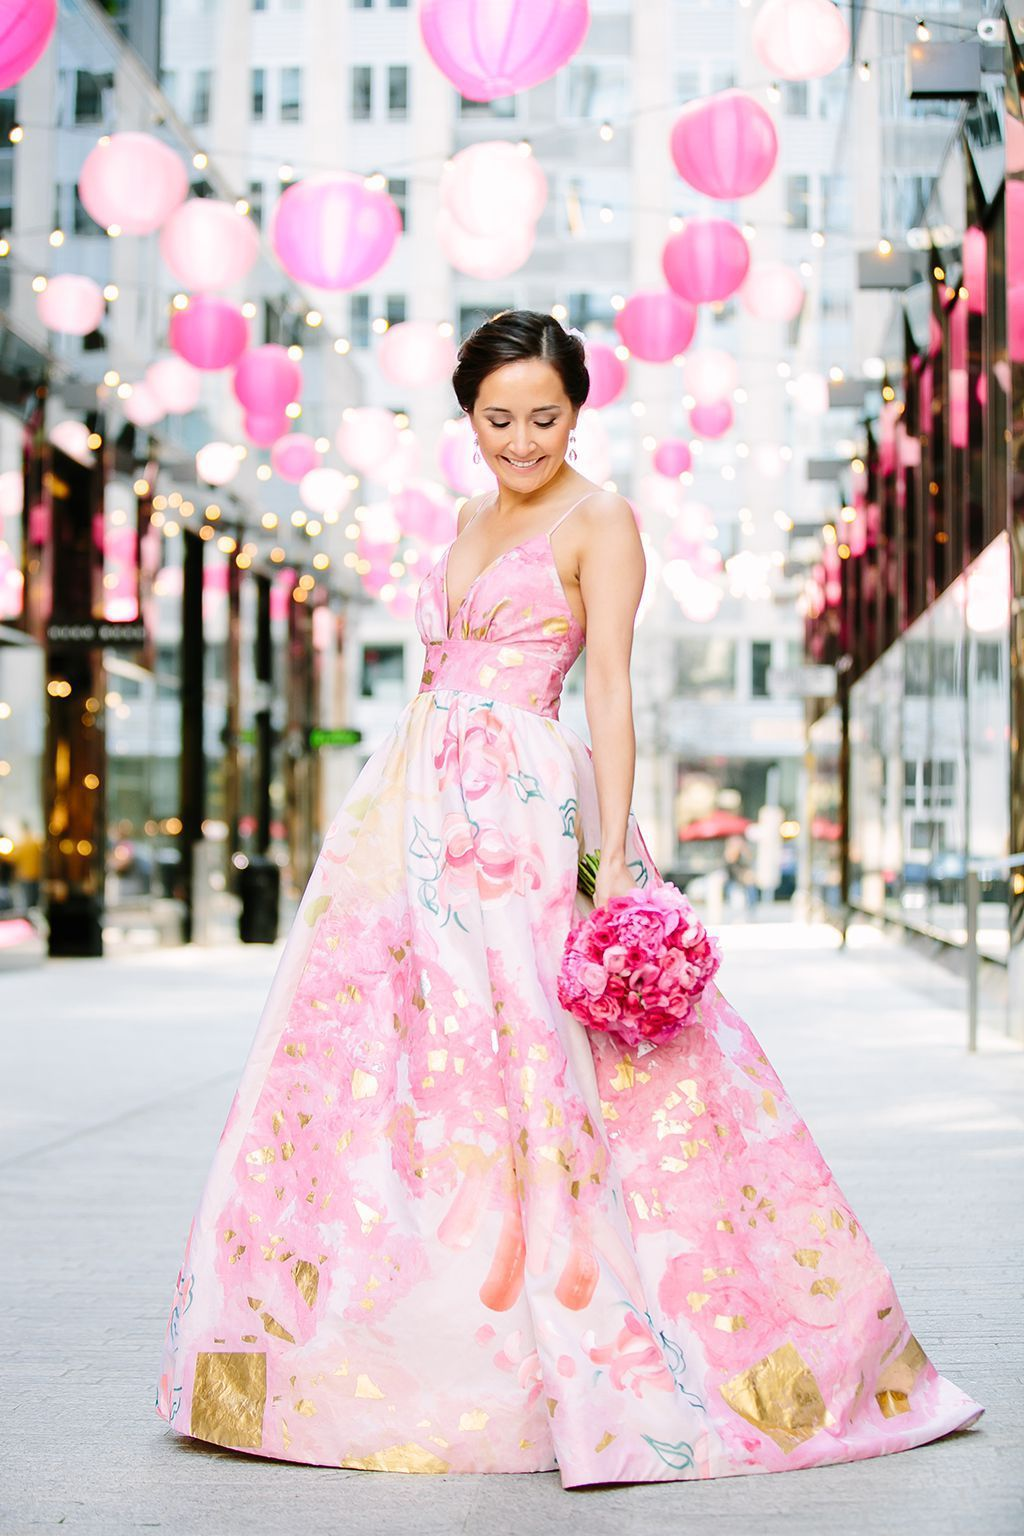 A Pink Gown, Arcade Games, and Fried Chicken Make this DC Wedding So ...